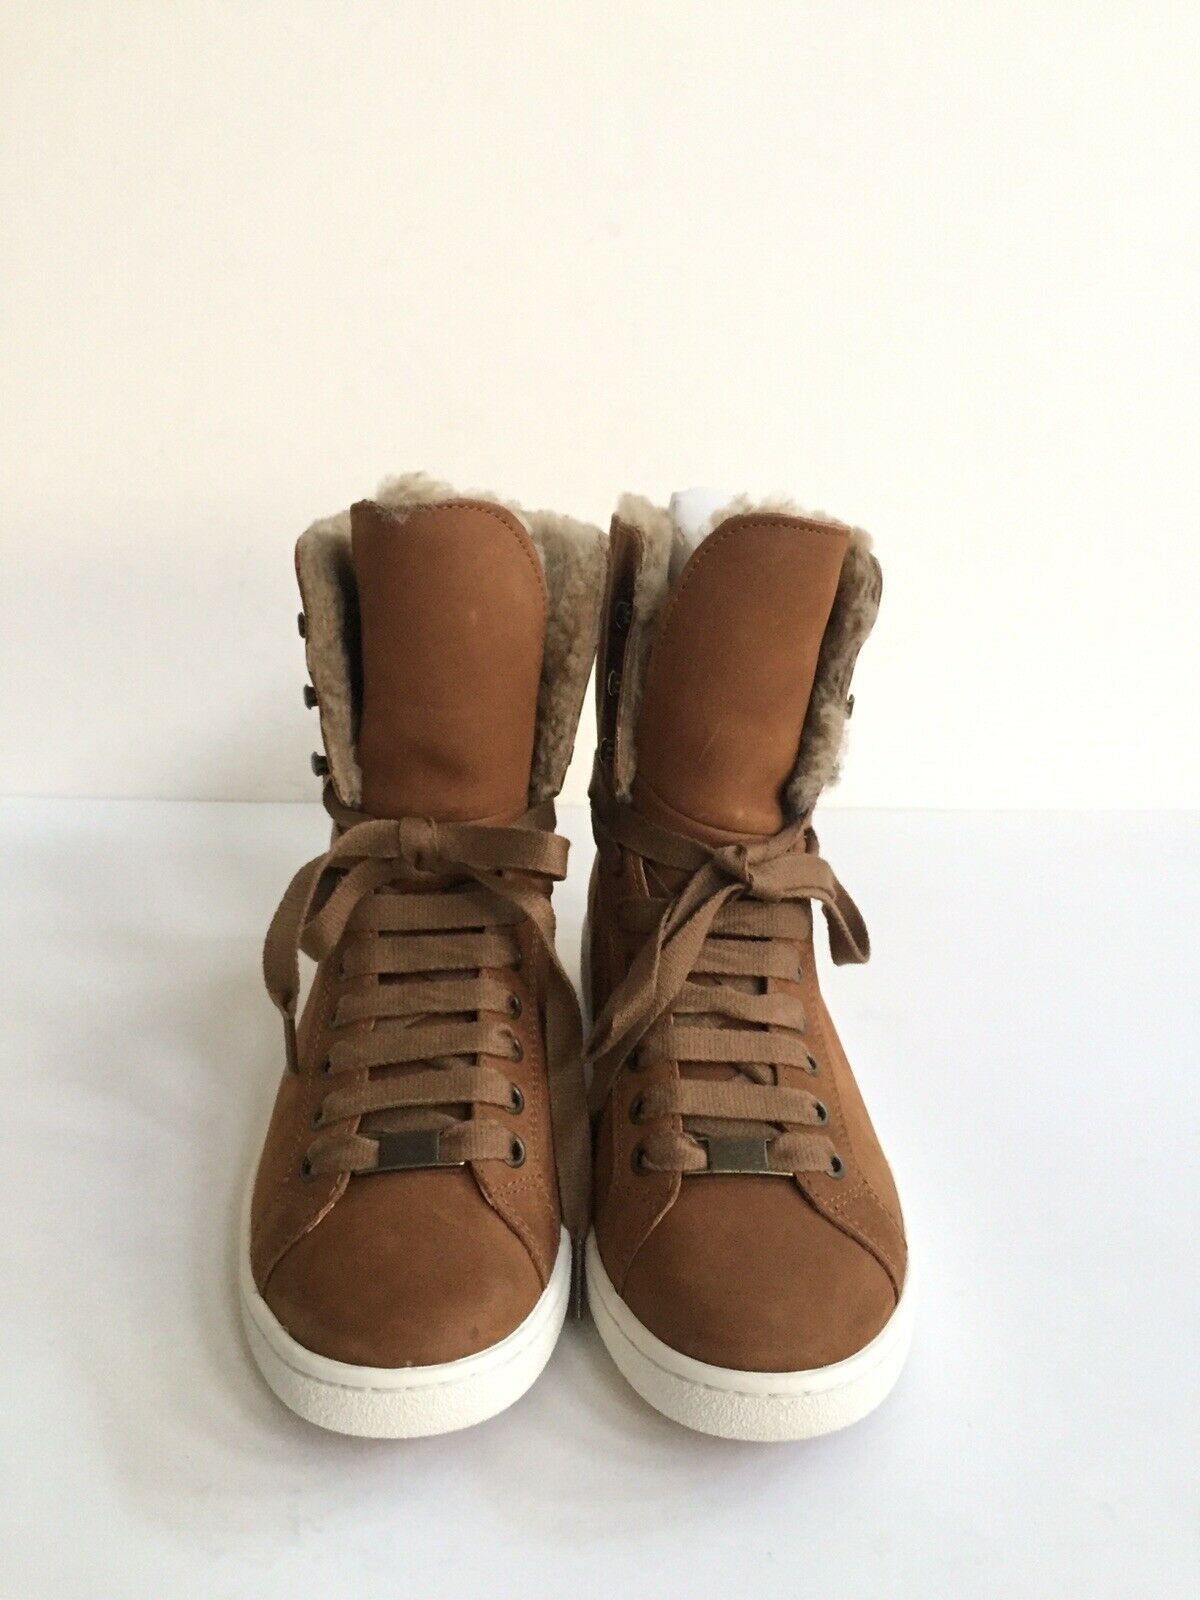 UGG STARLYN CHESTNUT ANKLE SNEAKERS LEATHER SHOE US 9.5 / EU 40.5 / UK 7.5 NIB image 3